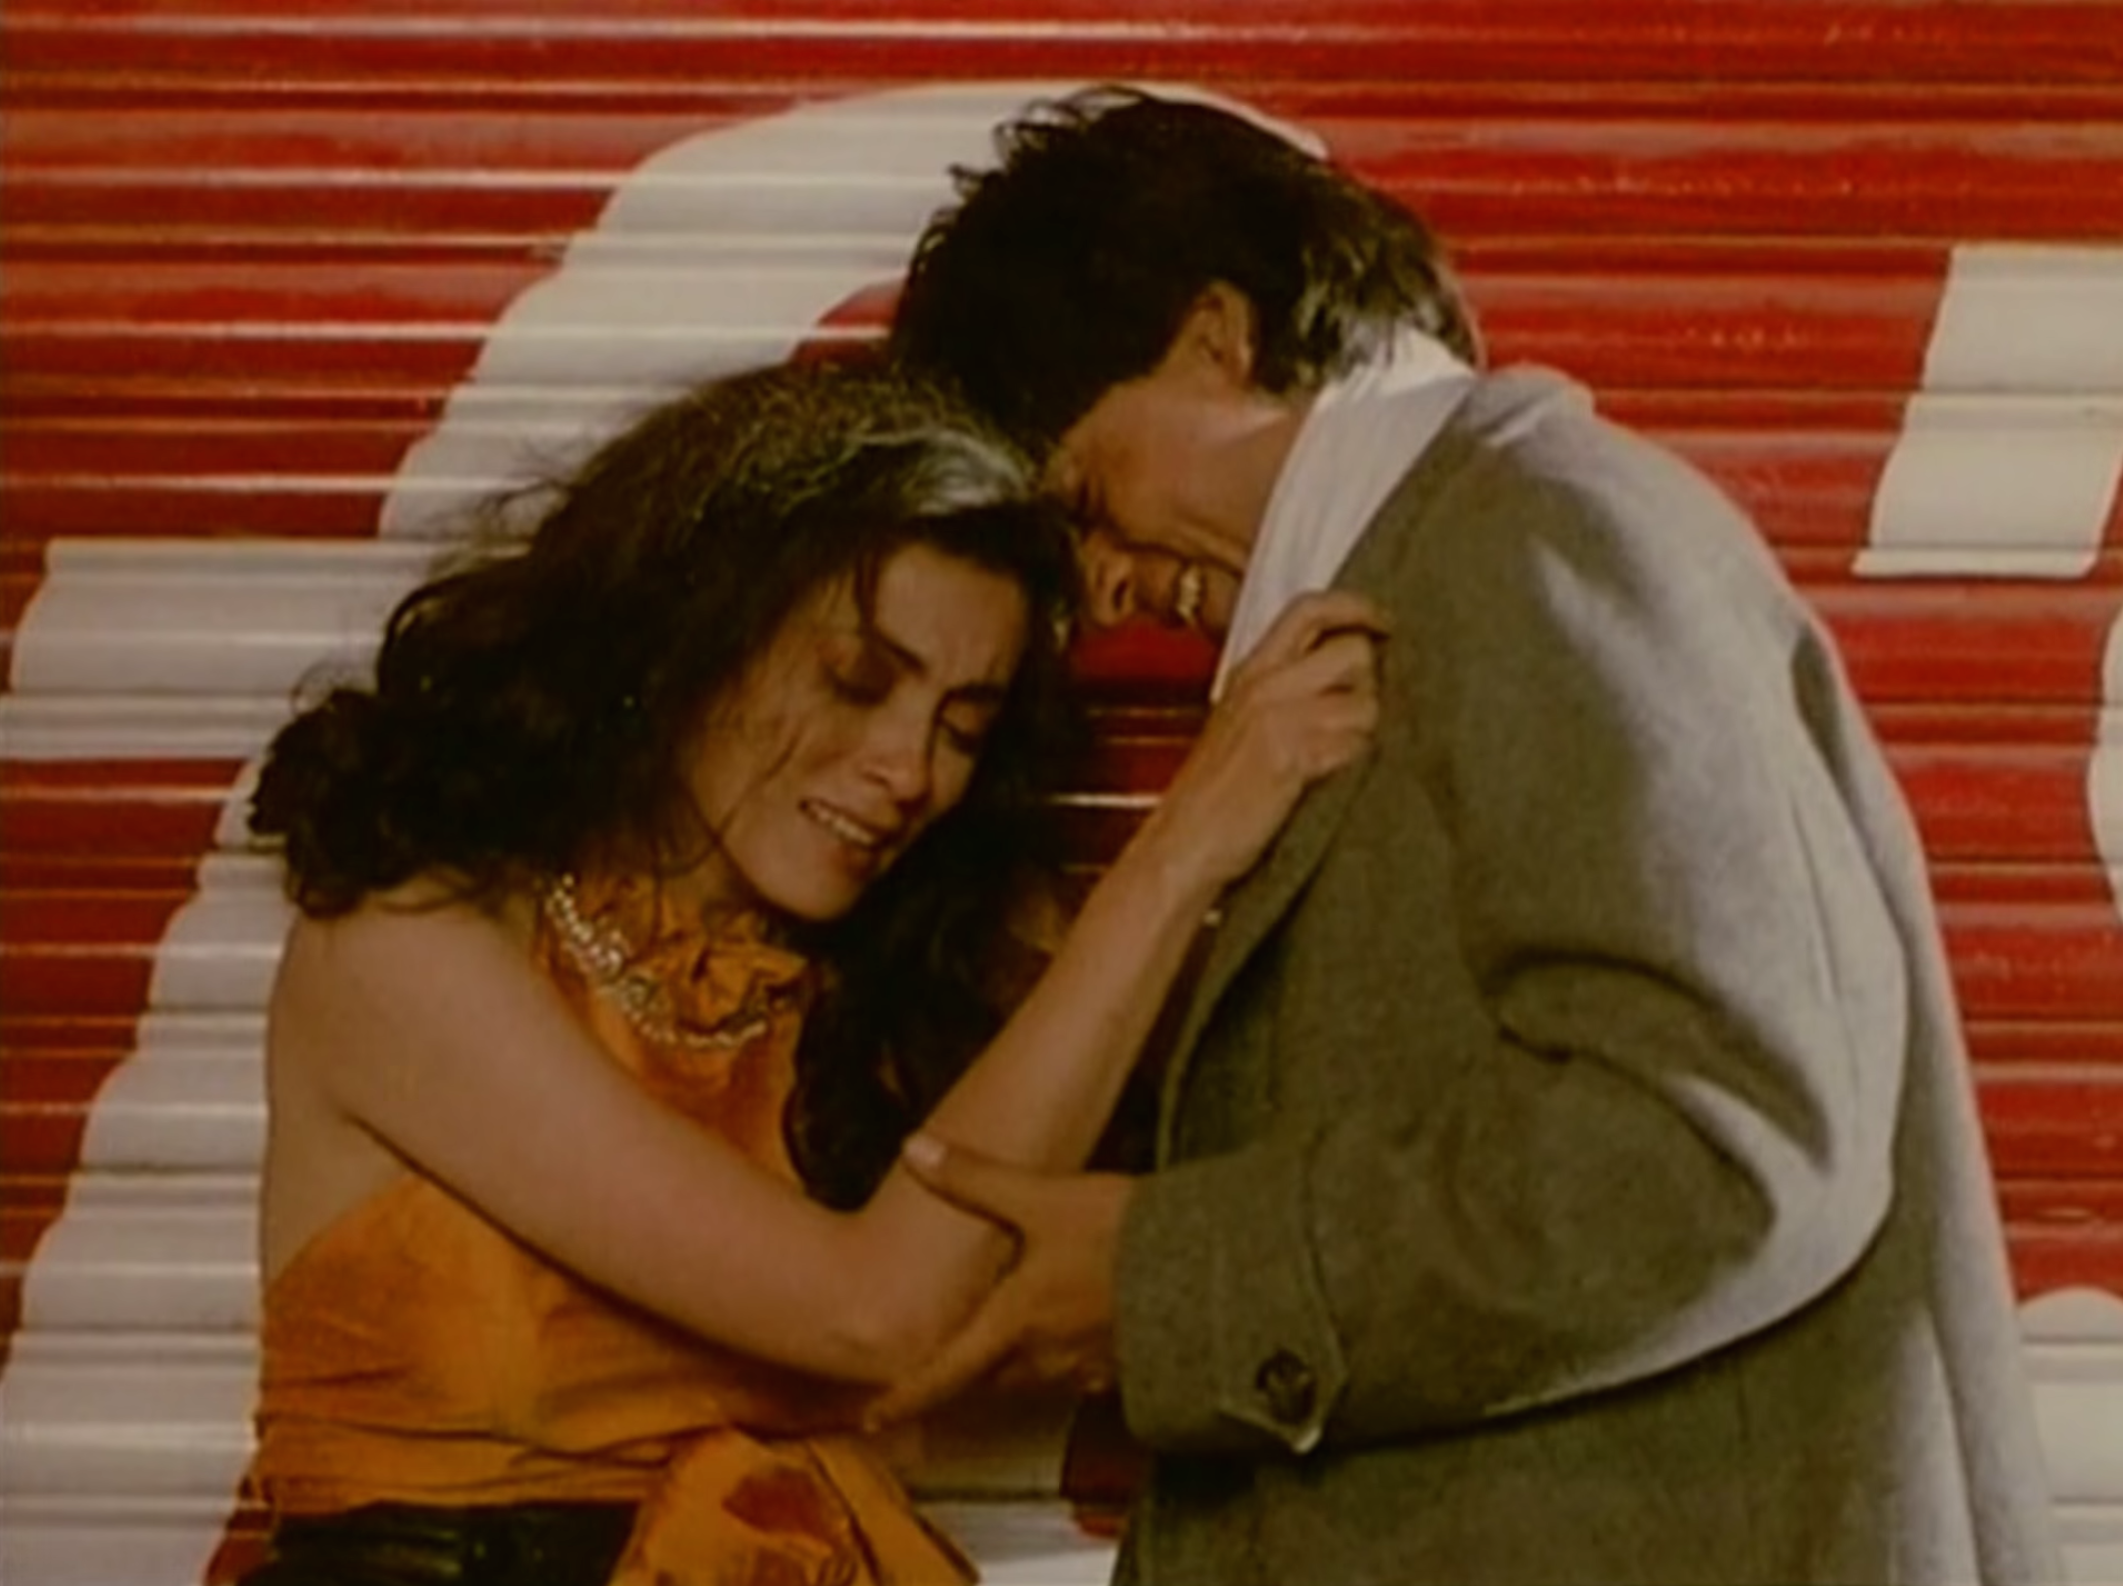 Deepa Sahi and SRK giggling after he tried to force himself on her in Maya (1993)